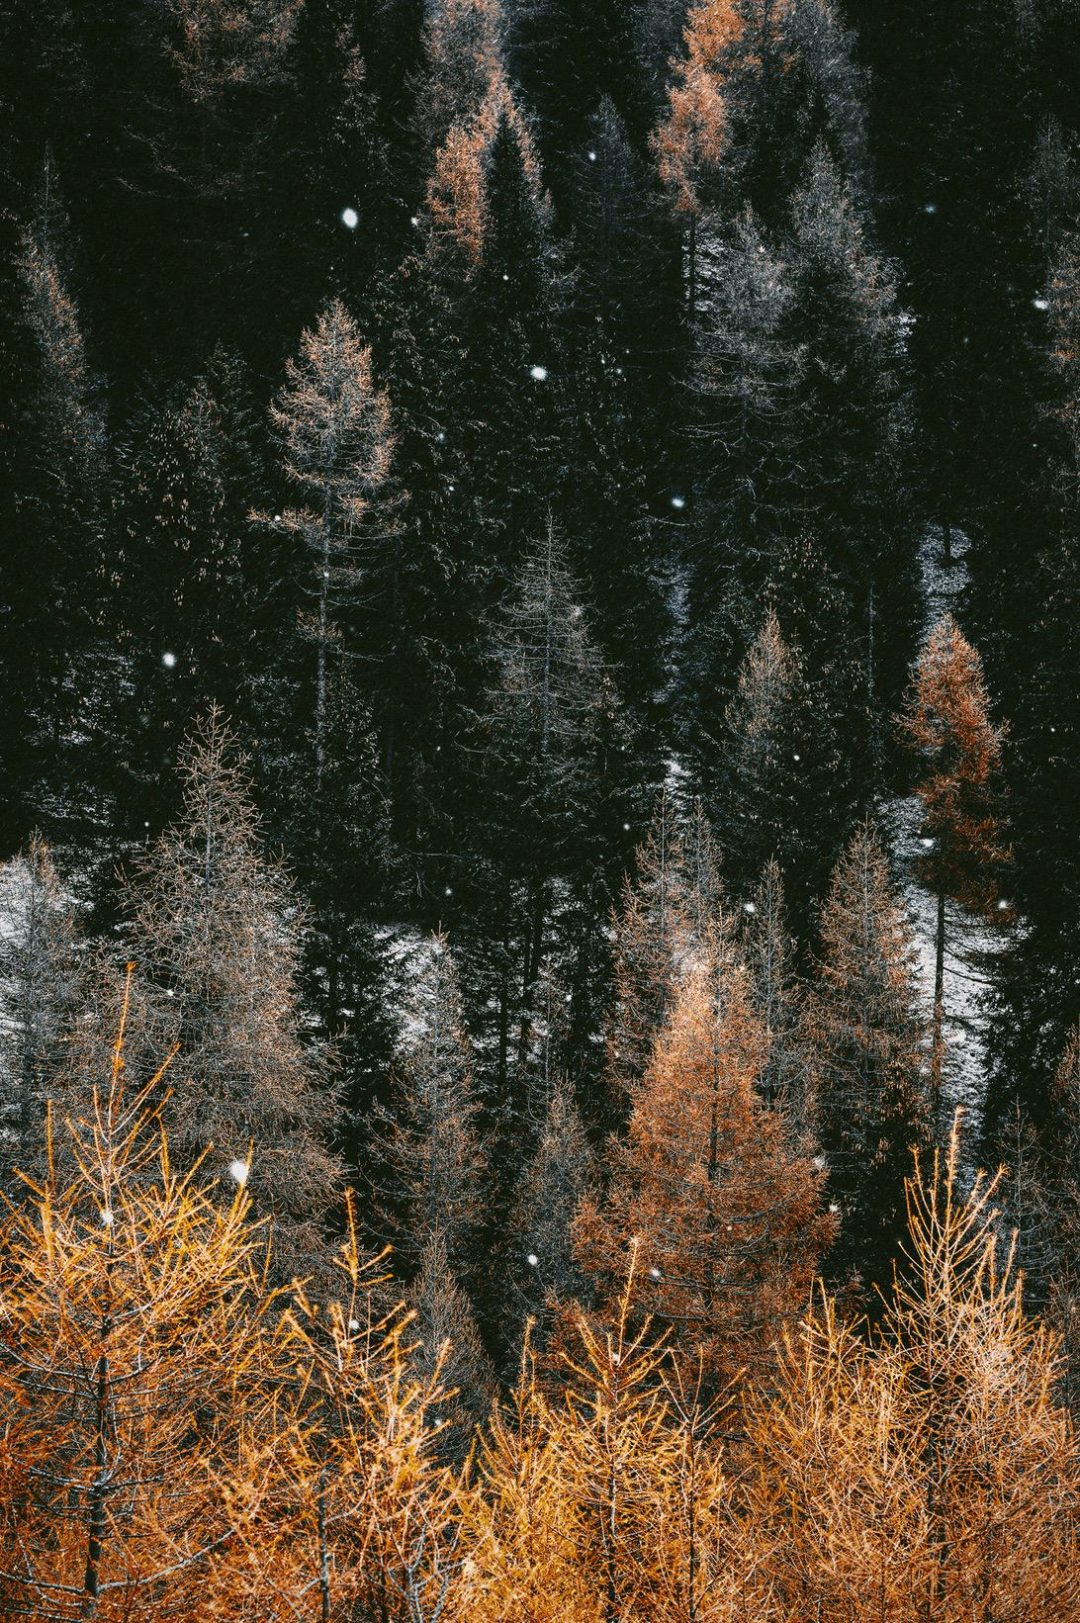 Fall wallpaper with forest - beautiful nature wallpapers for iPhone